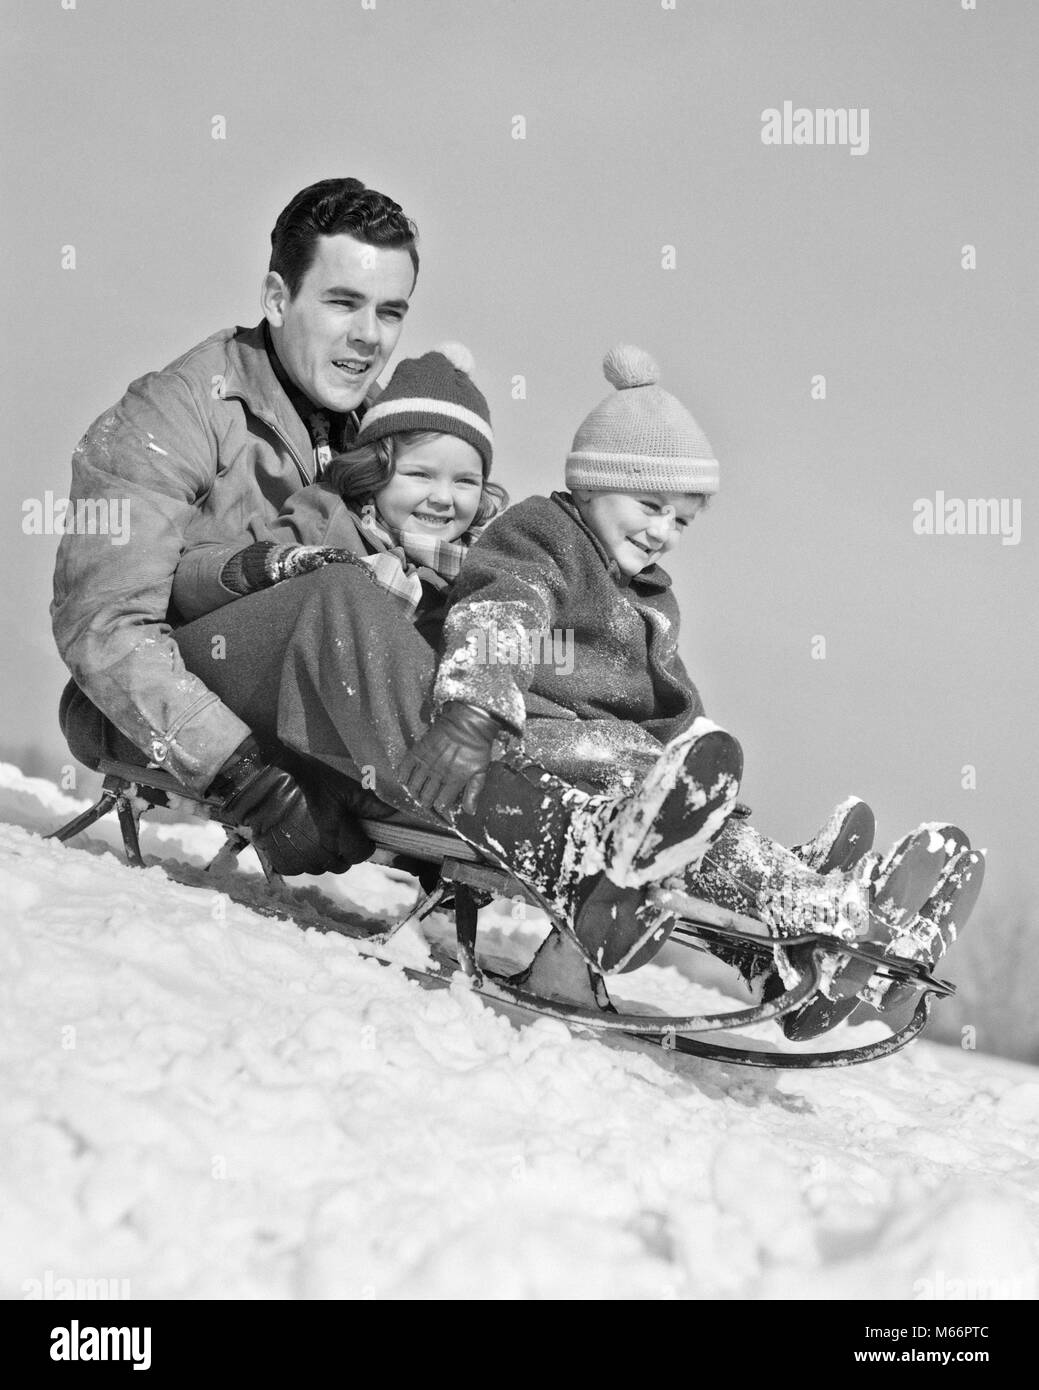 1930s 1940s FATHER TWO CHILDREN ON SLED IN SNOW GOING DOWN HILL - w4217 HAR001 HARS OLD TIME BROTHER OLD FASHION - Stock Image